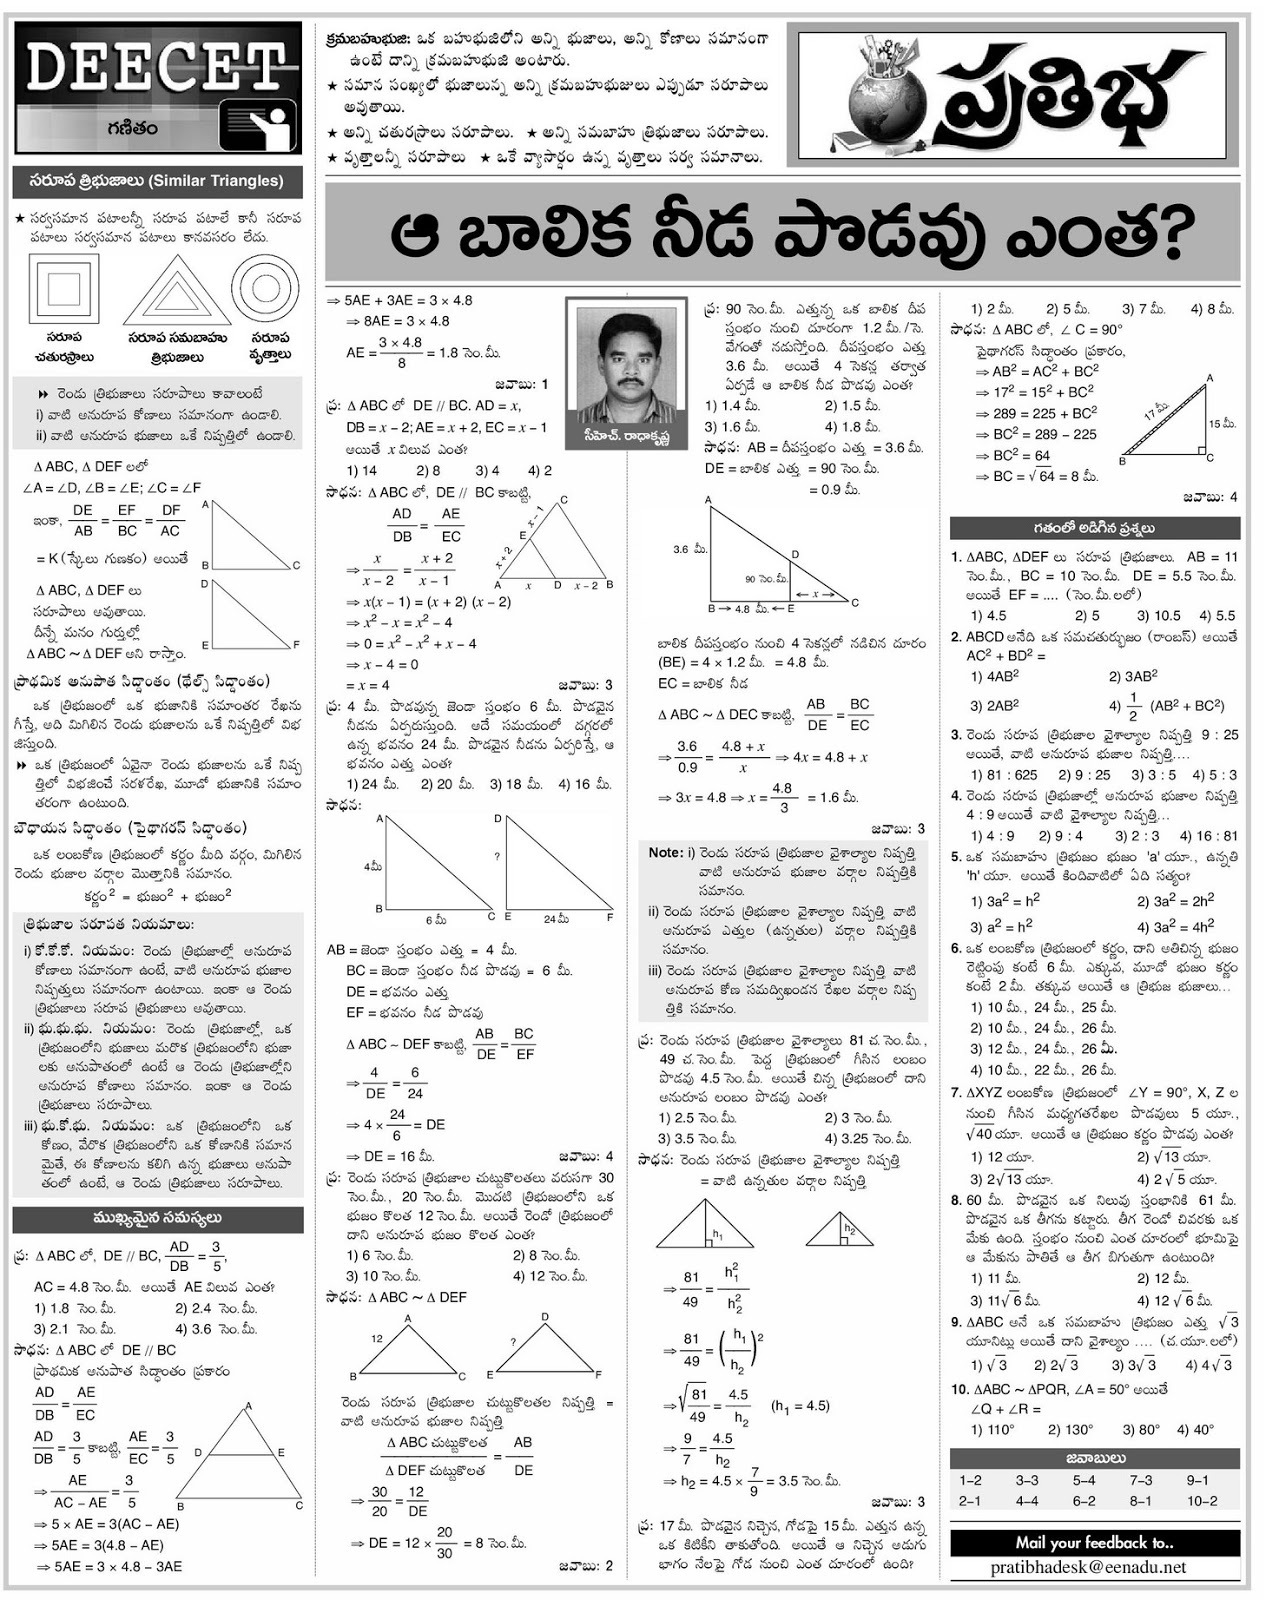 TELUGU BASHA: download SBI PO Practice test papers, dee